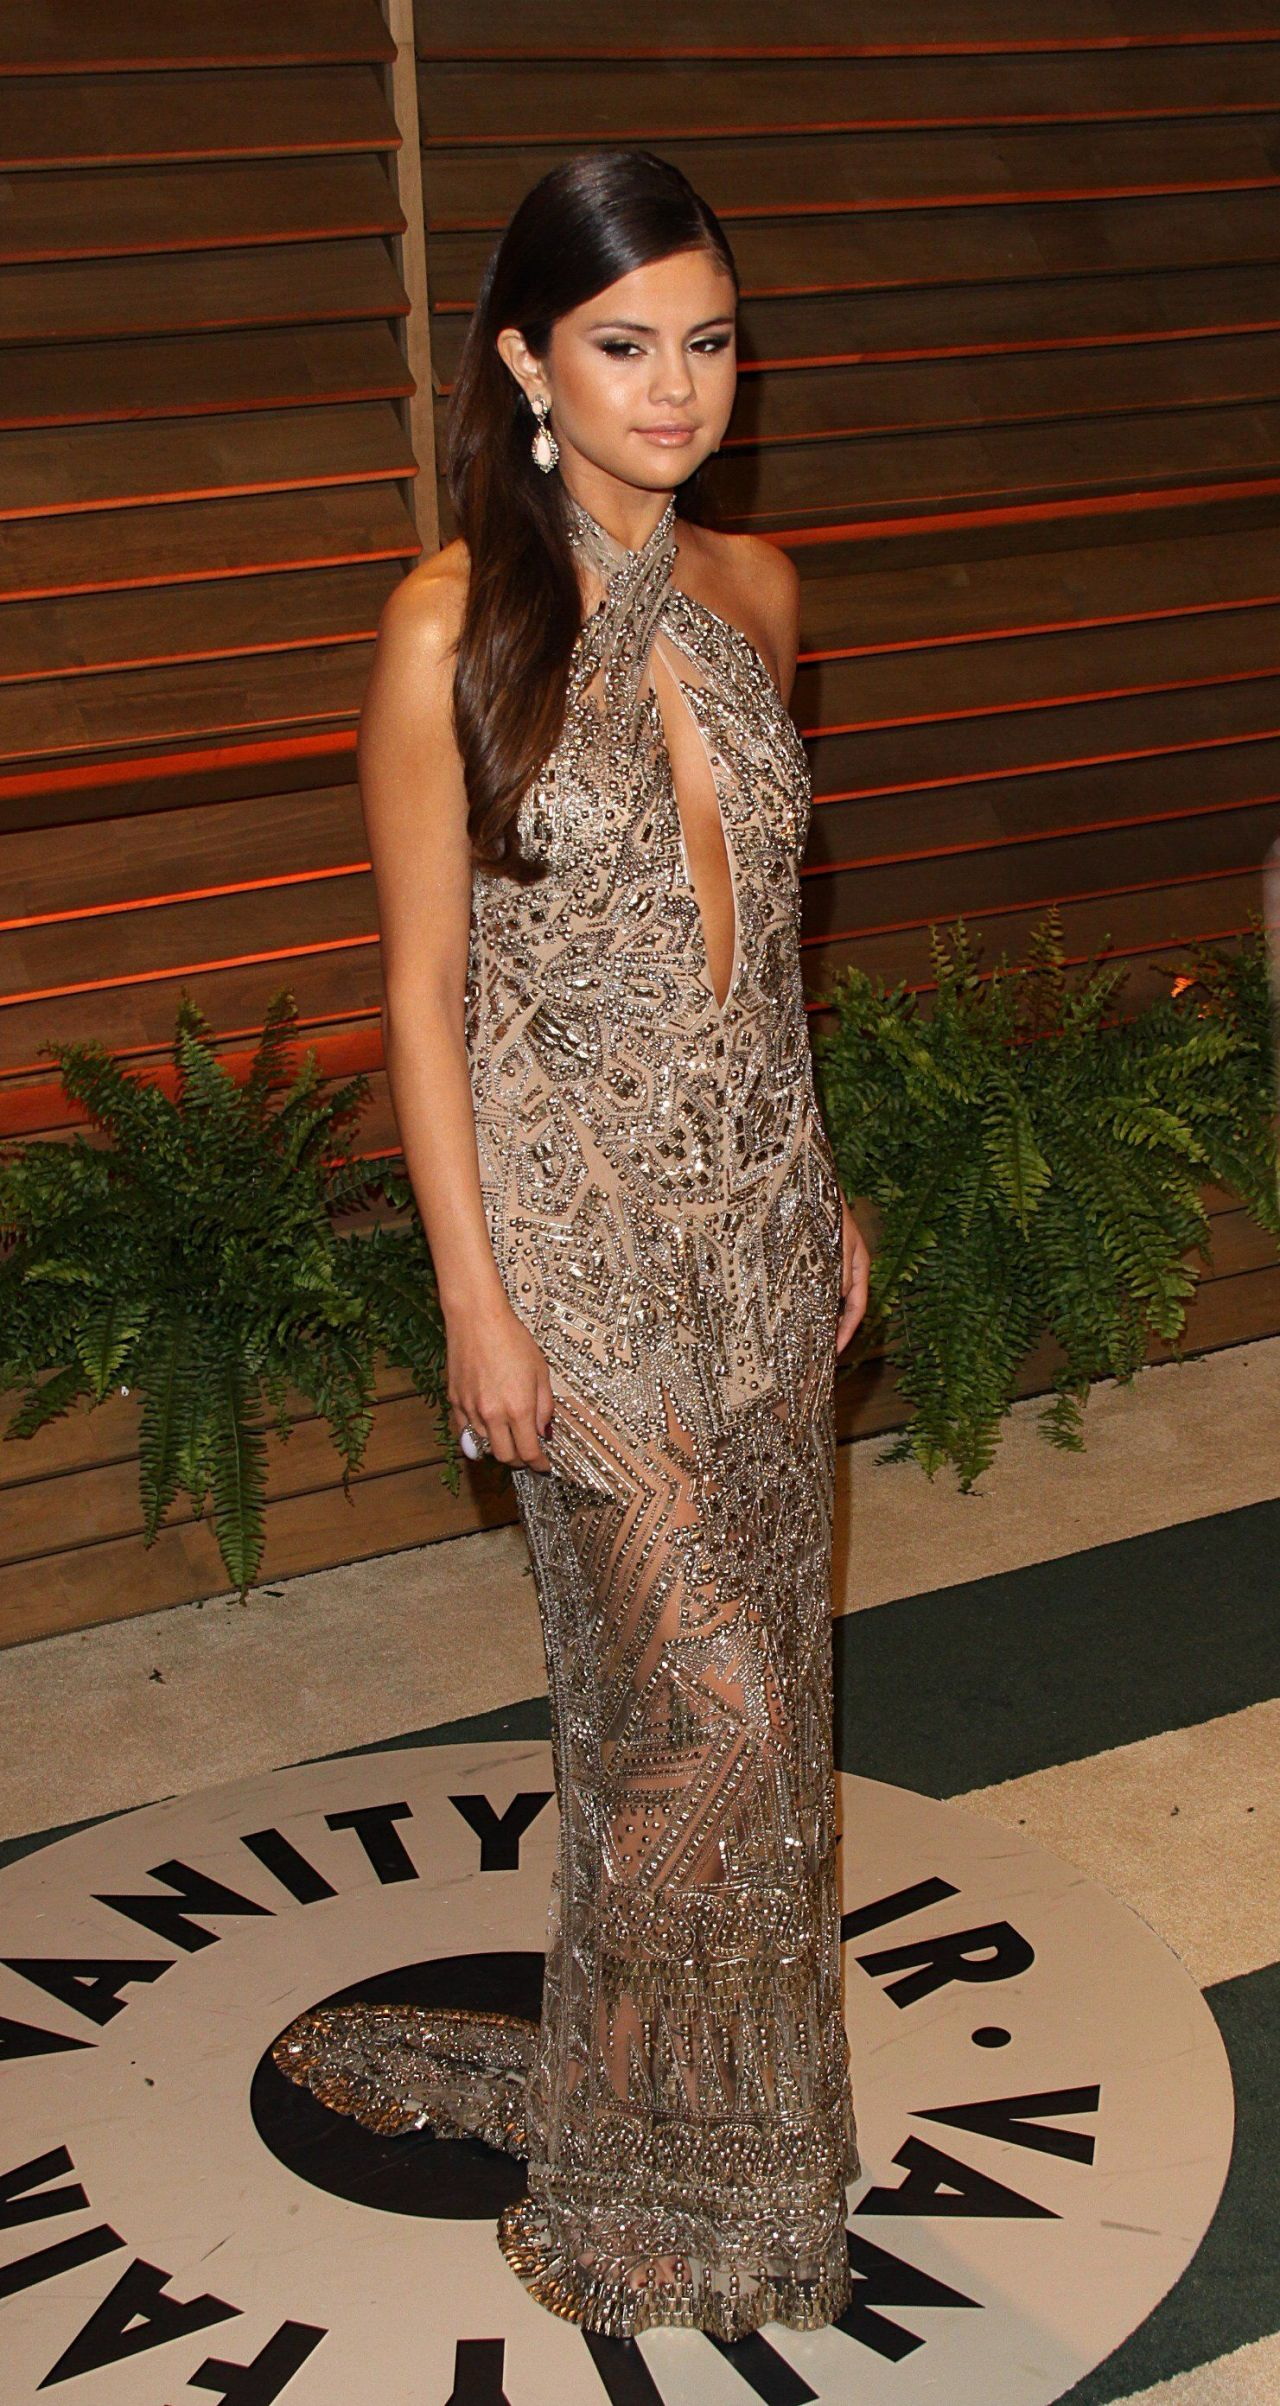 Selena Gomez Wearing Emilio Pucci Gown at 2014 Vanity Fair